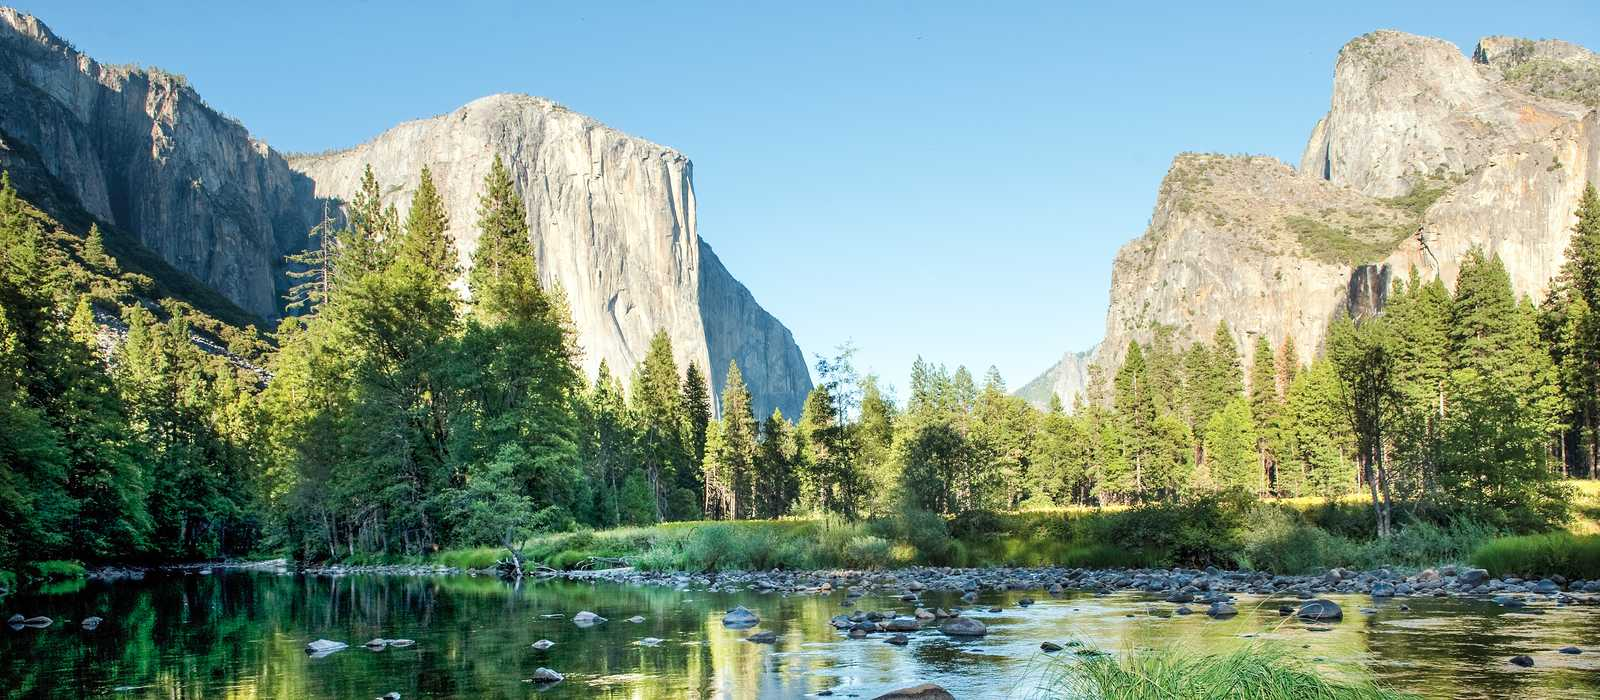 Fotografie im Yosemite Nationalpark